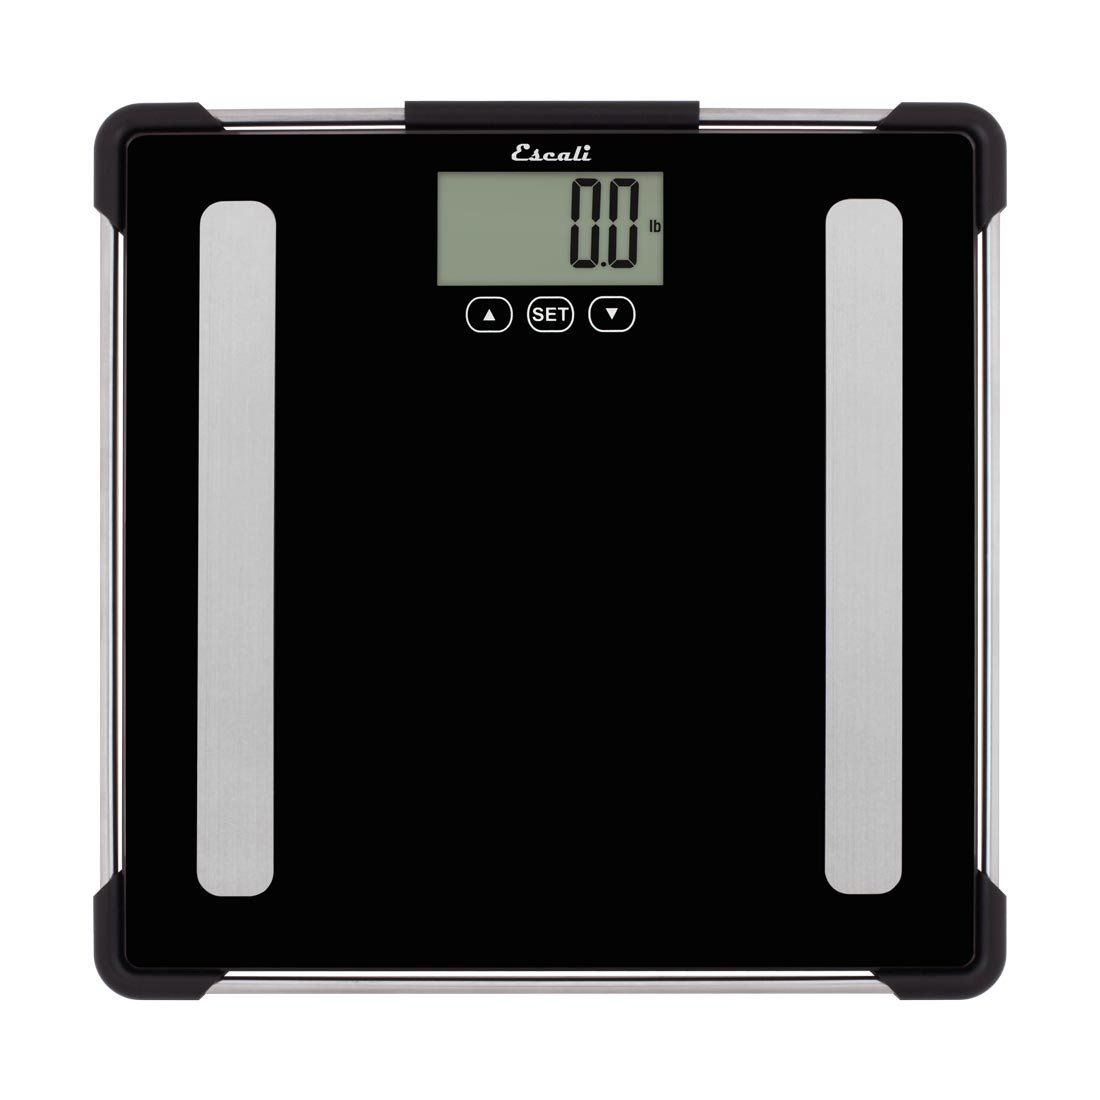 Escali BF180 Advanced Bioelectrical Impedance Analysis (BIA) Technology Calculates Weight, Body Fat, Body Water, Muscle Mass and Bone Density, LCD Digital Display, 400lb Capacity, Black